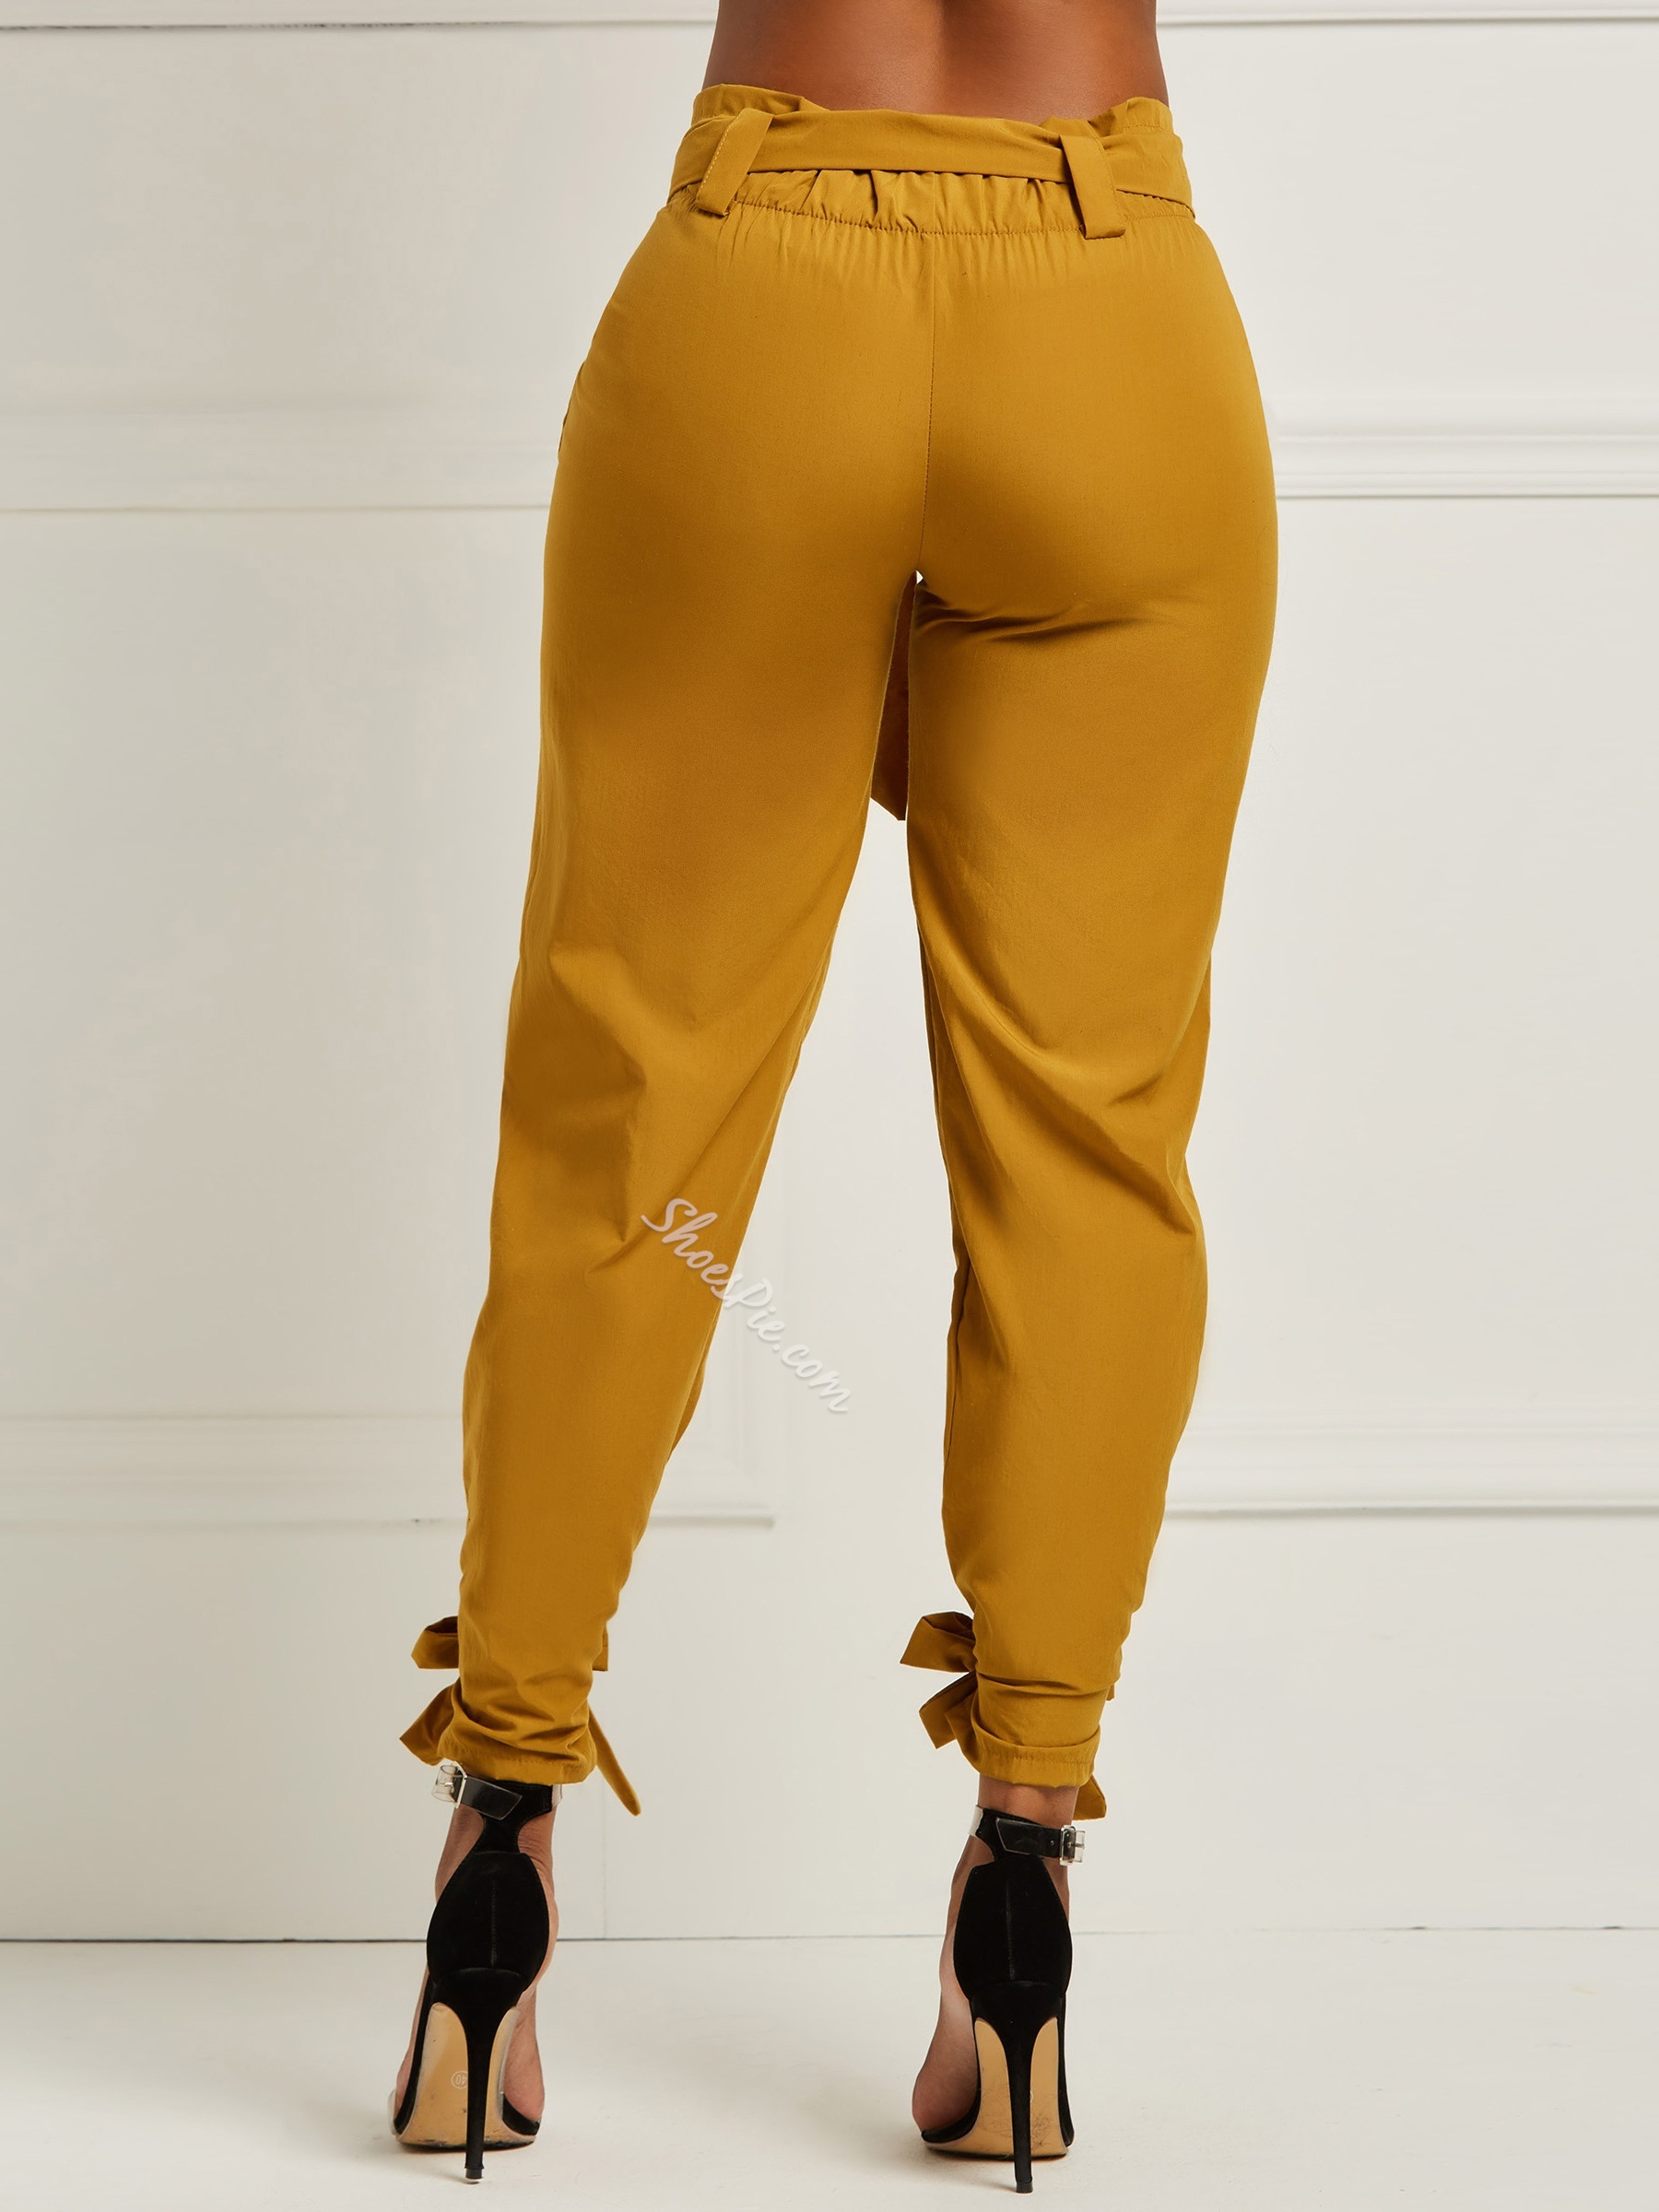 Brown Bowknot Slim Full Length Women's Casual Pants